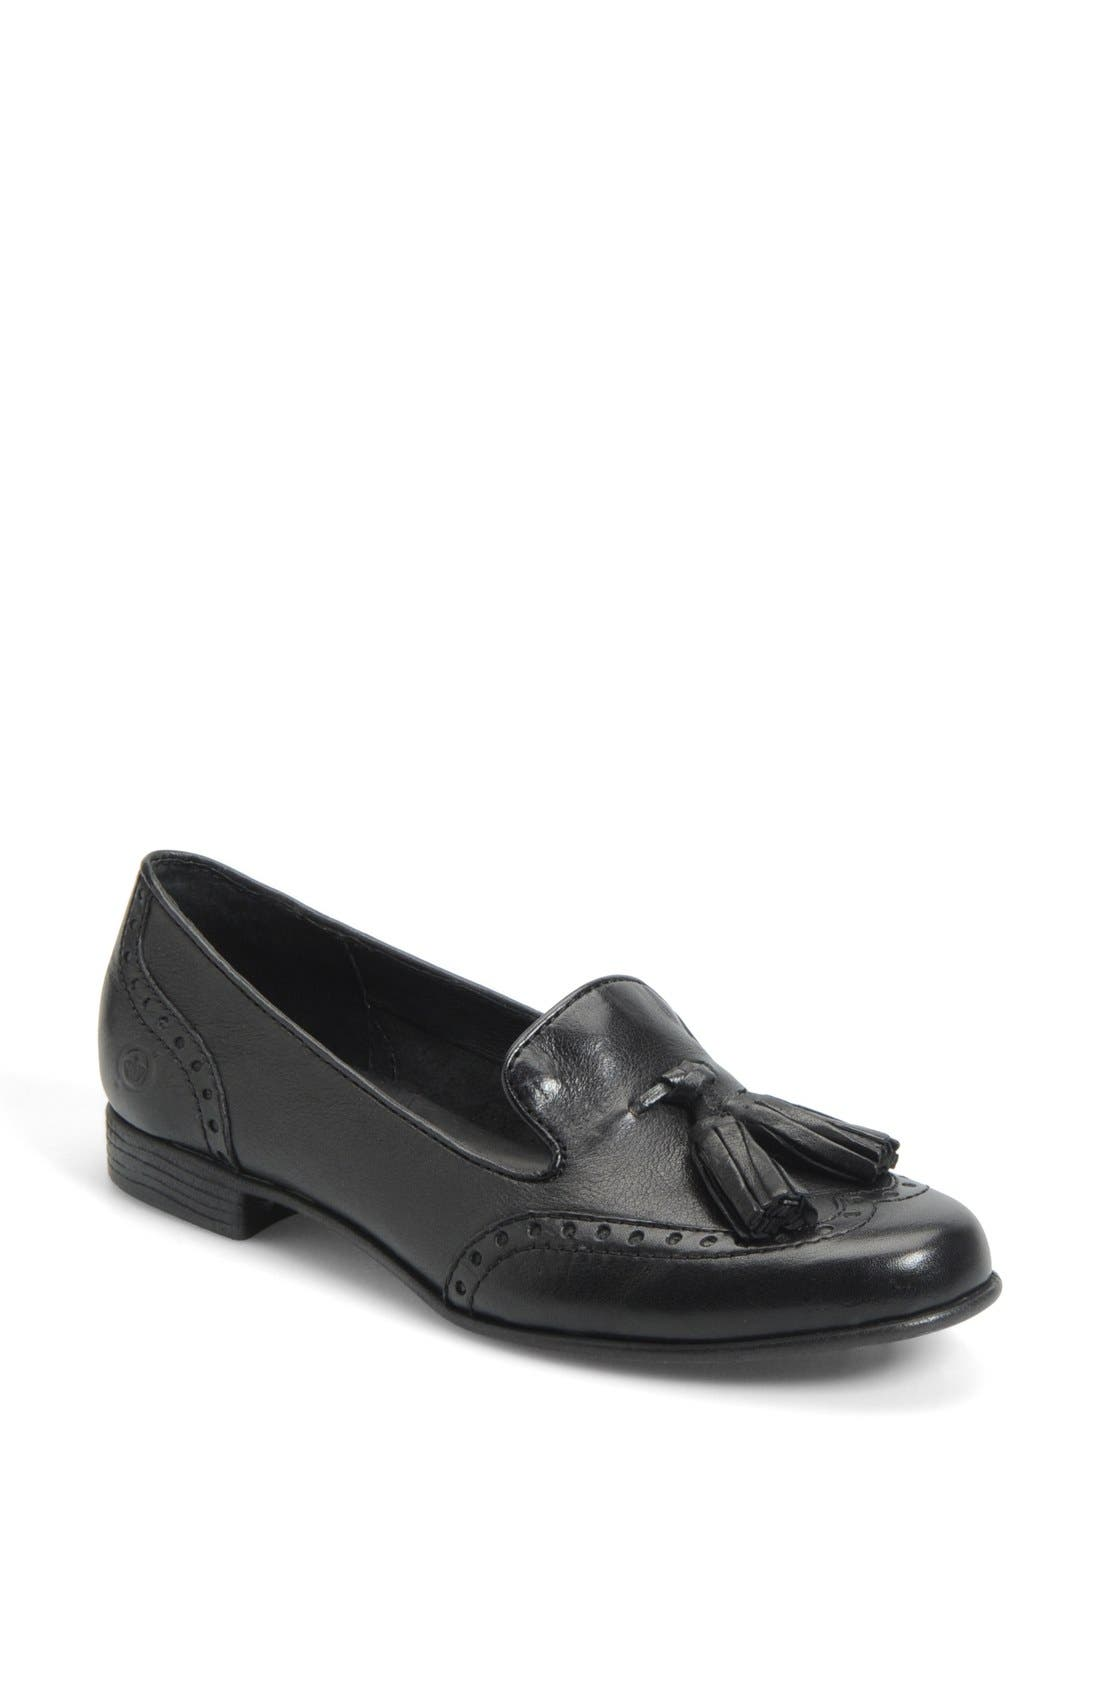 Alternate Image 1 Selected - Børn 'Charmaine' Brogue Loafer